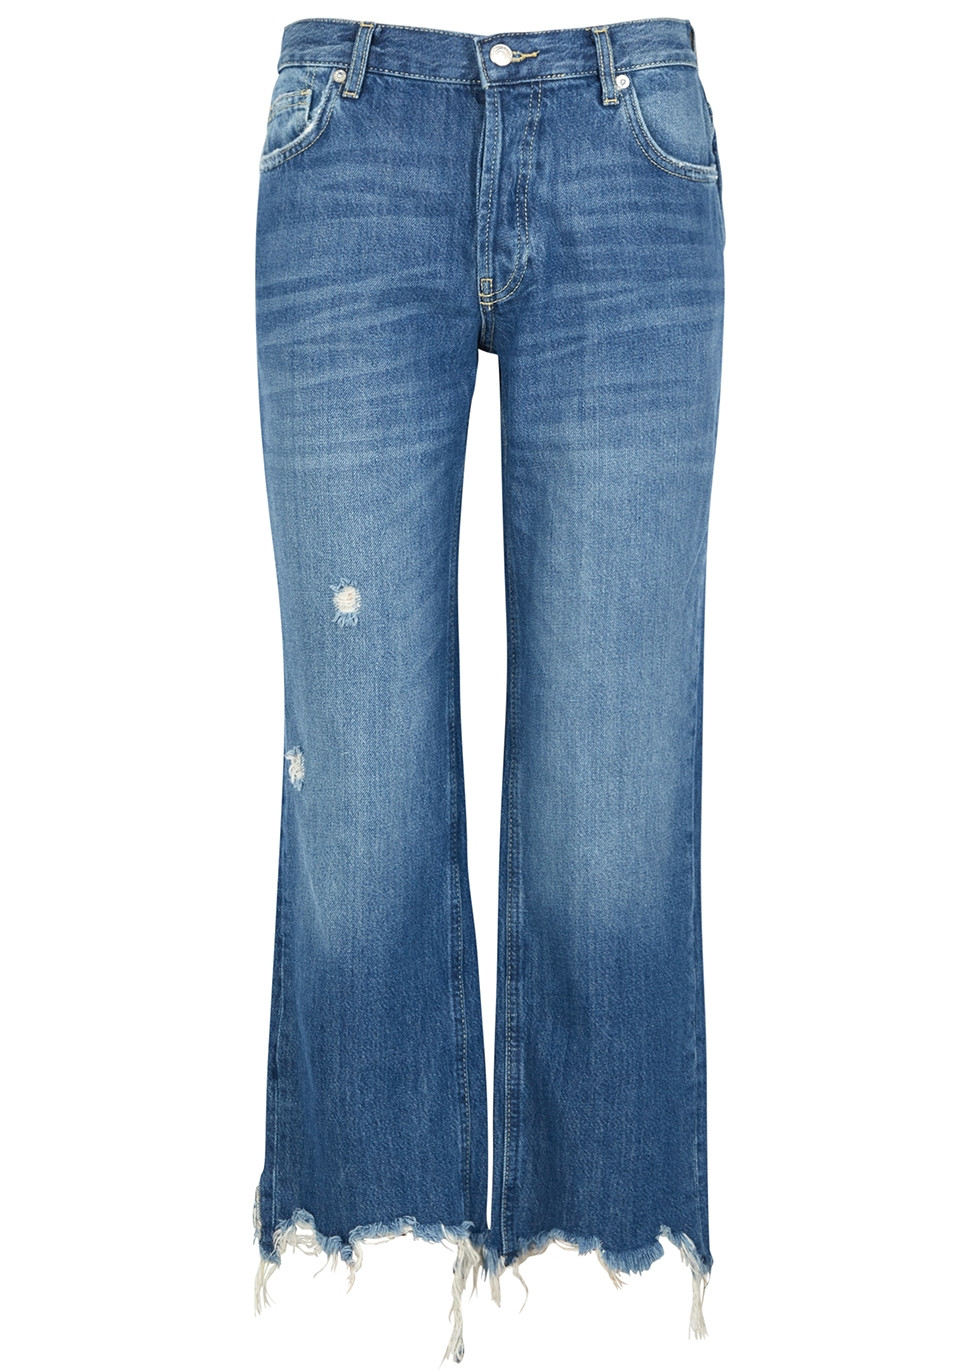 Maggie blue straight-leg jeans - Free People